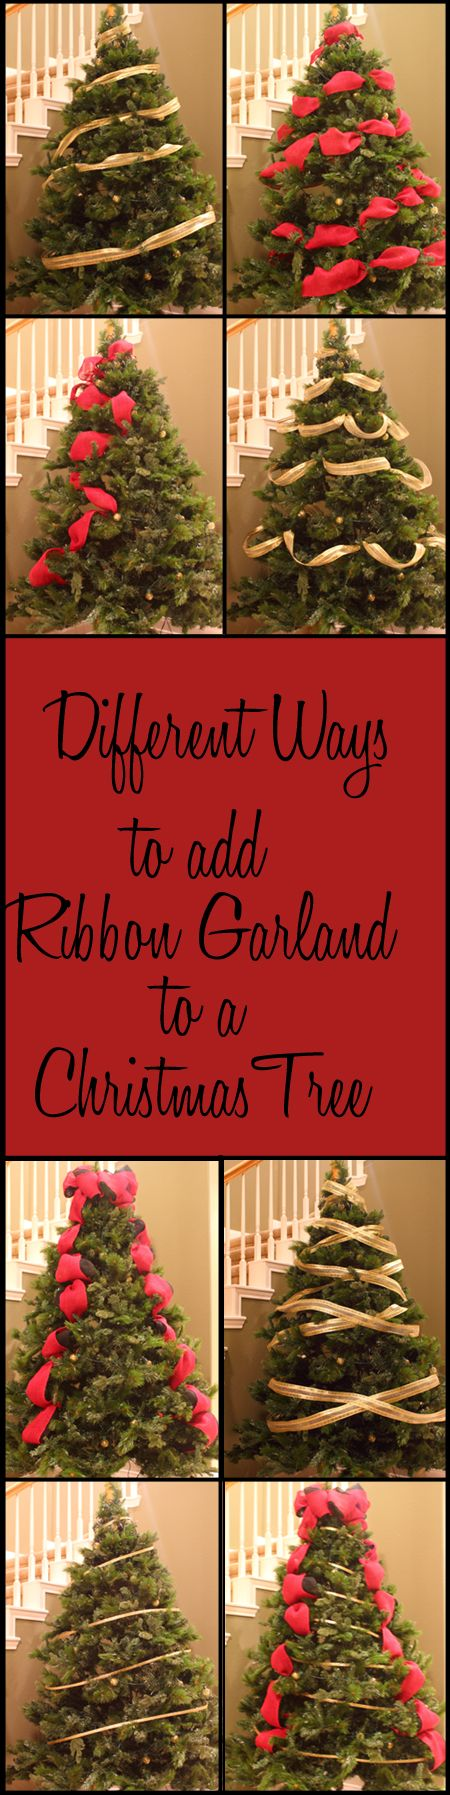 Different Ways To Add Ribbon Garland To A Christmas Tree